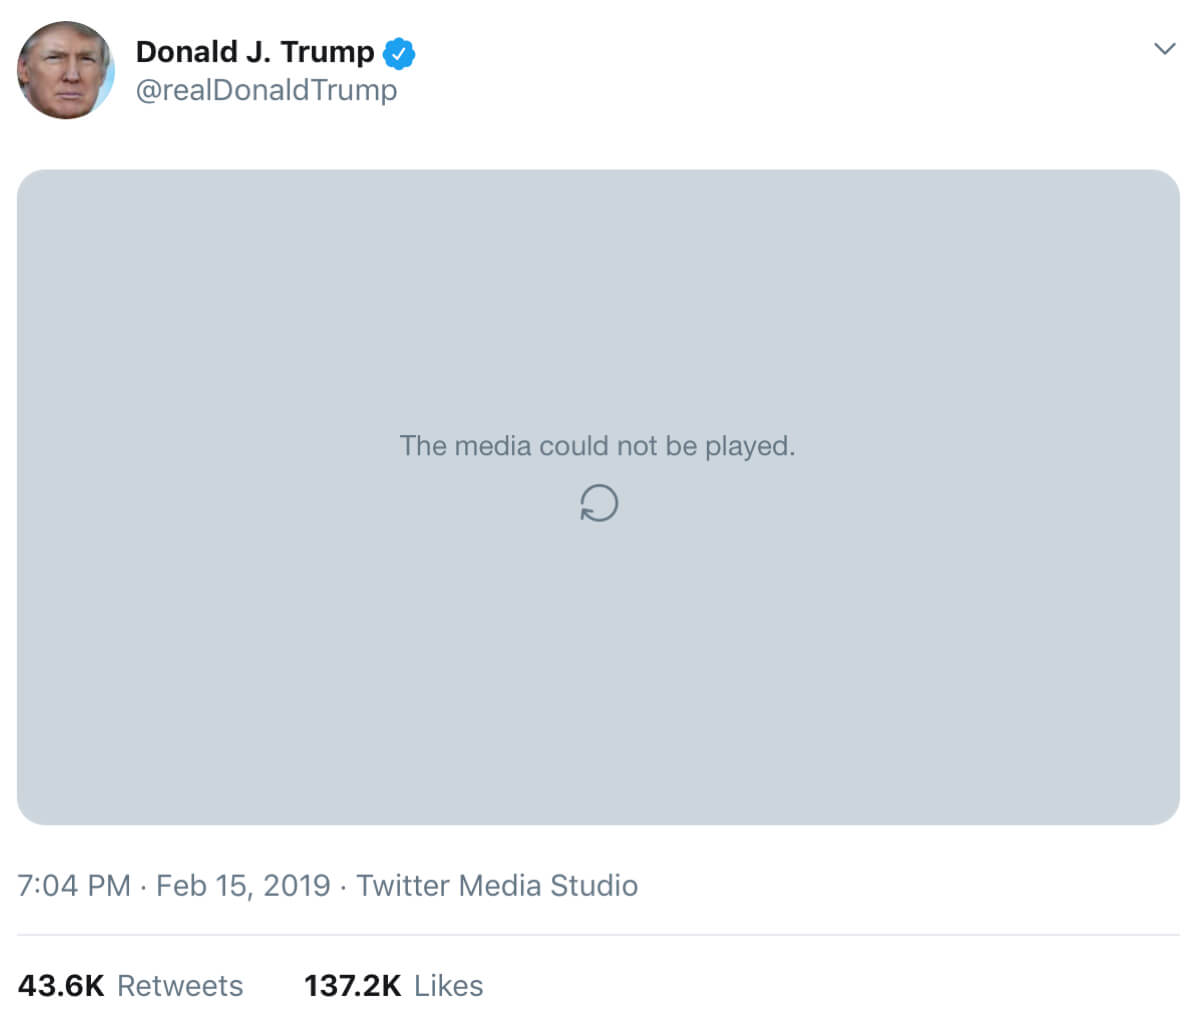 Trump's tweet containing the now disabled meme video.